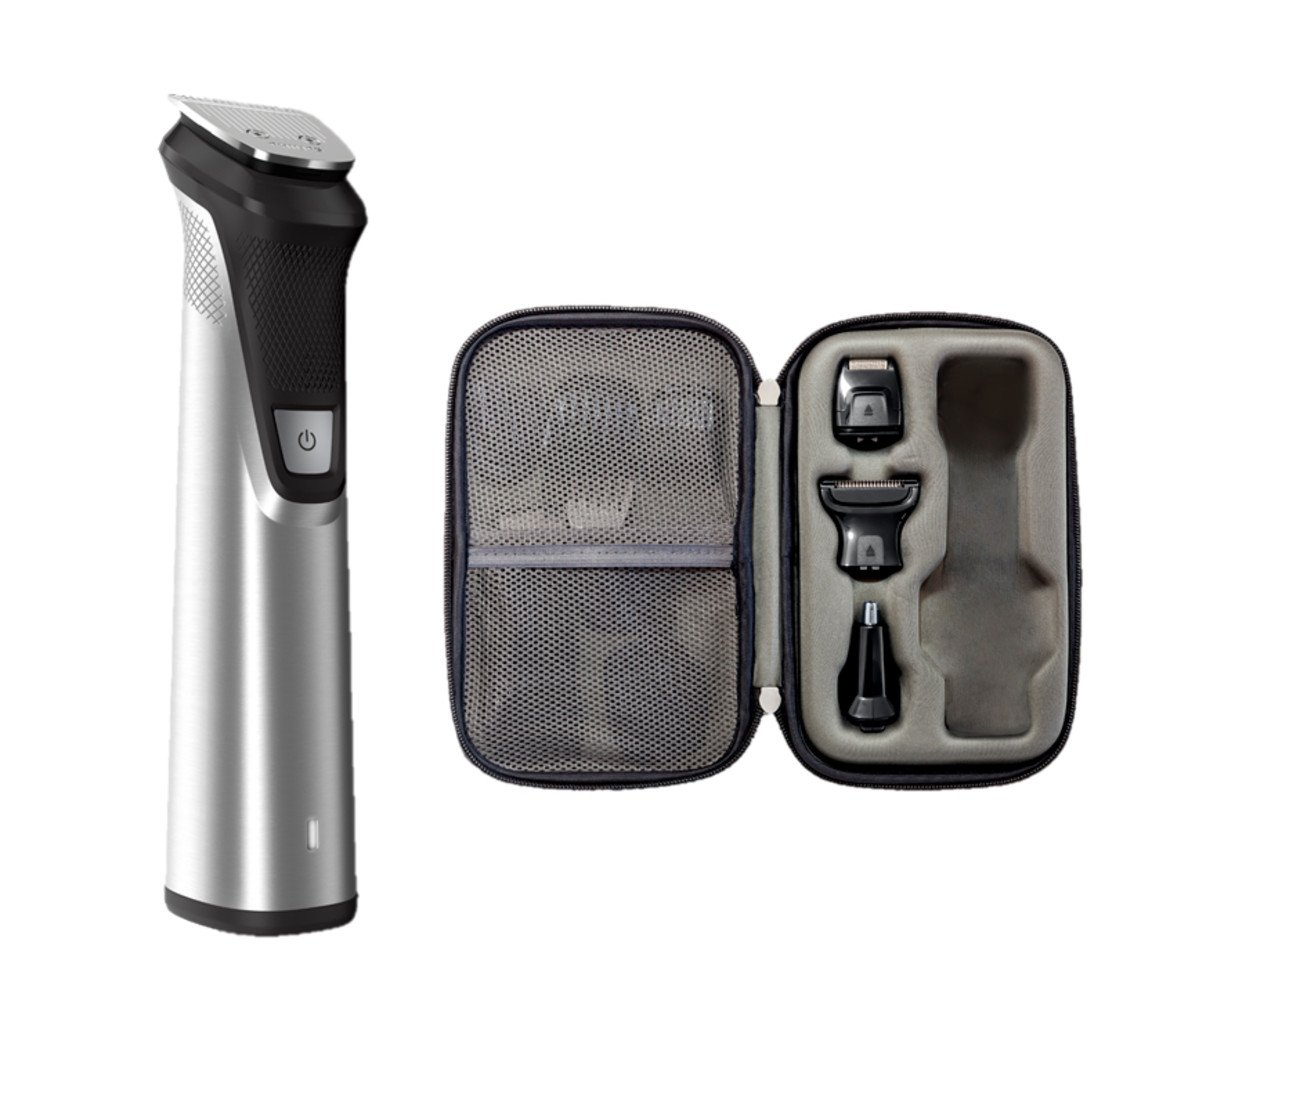 Philips Norelco Multigroom All-in-One Trimmer Series 7000, 25 pieces and premium case - No Blade Oil Needed, MG7770/49 by Philips Norelco